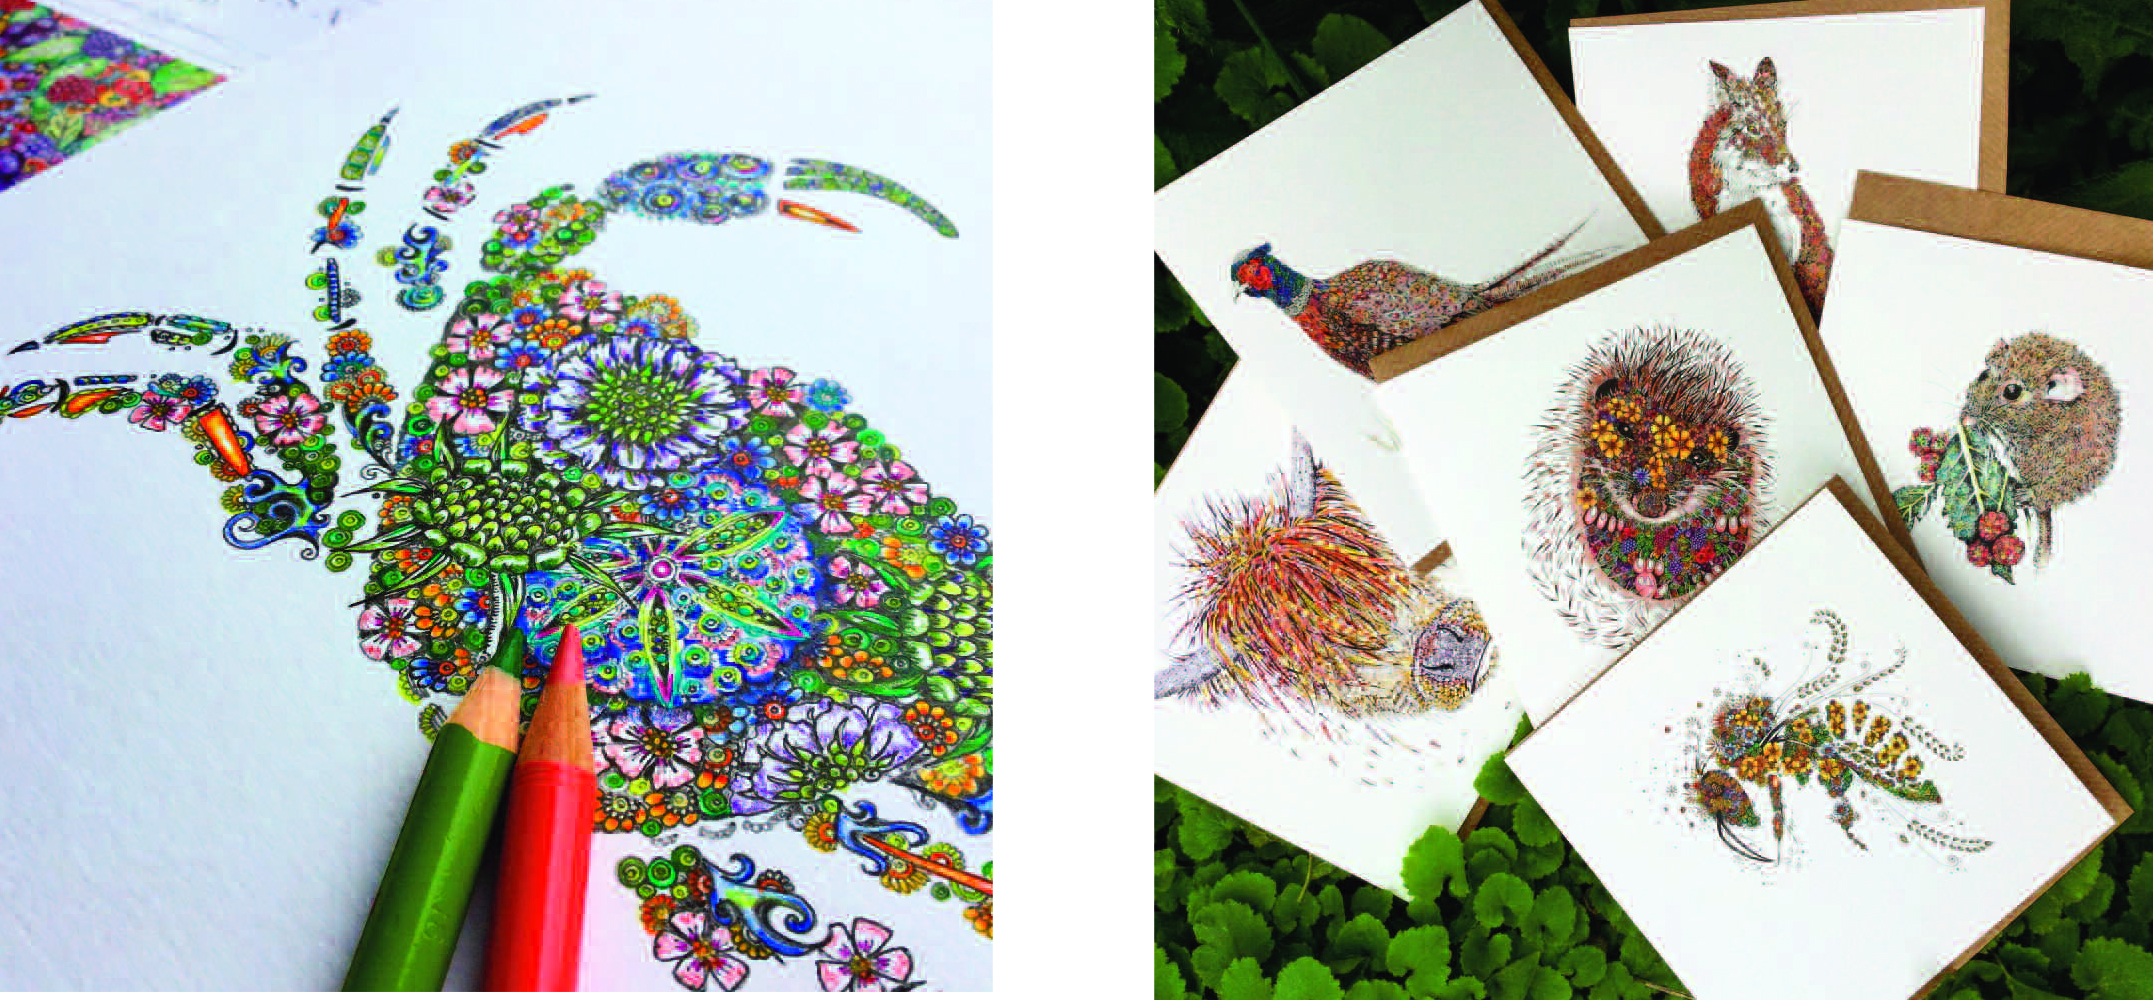 Above: The incredibly detailed artwork from Doodleicious Art caught Miles Robinson's eye.